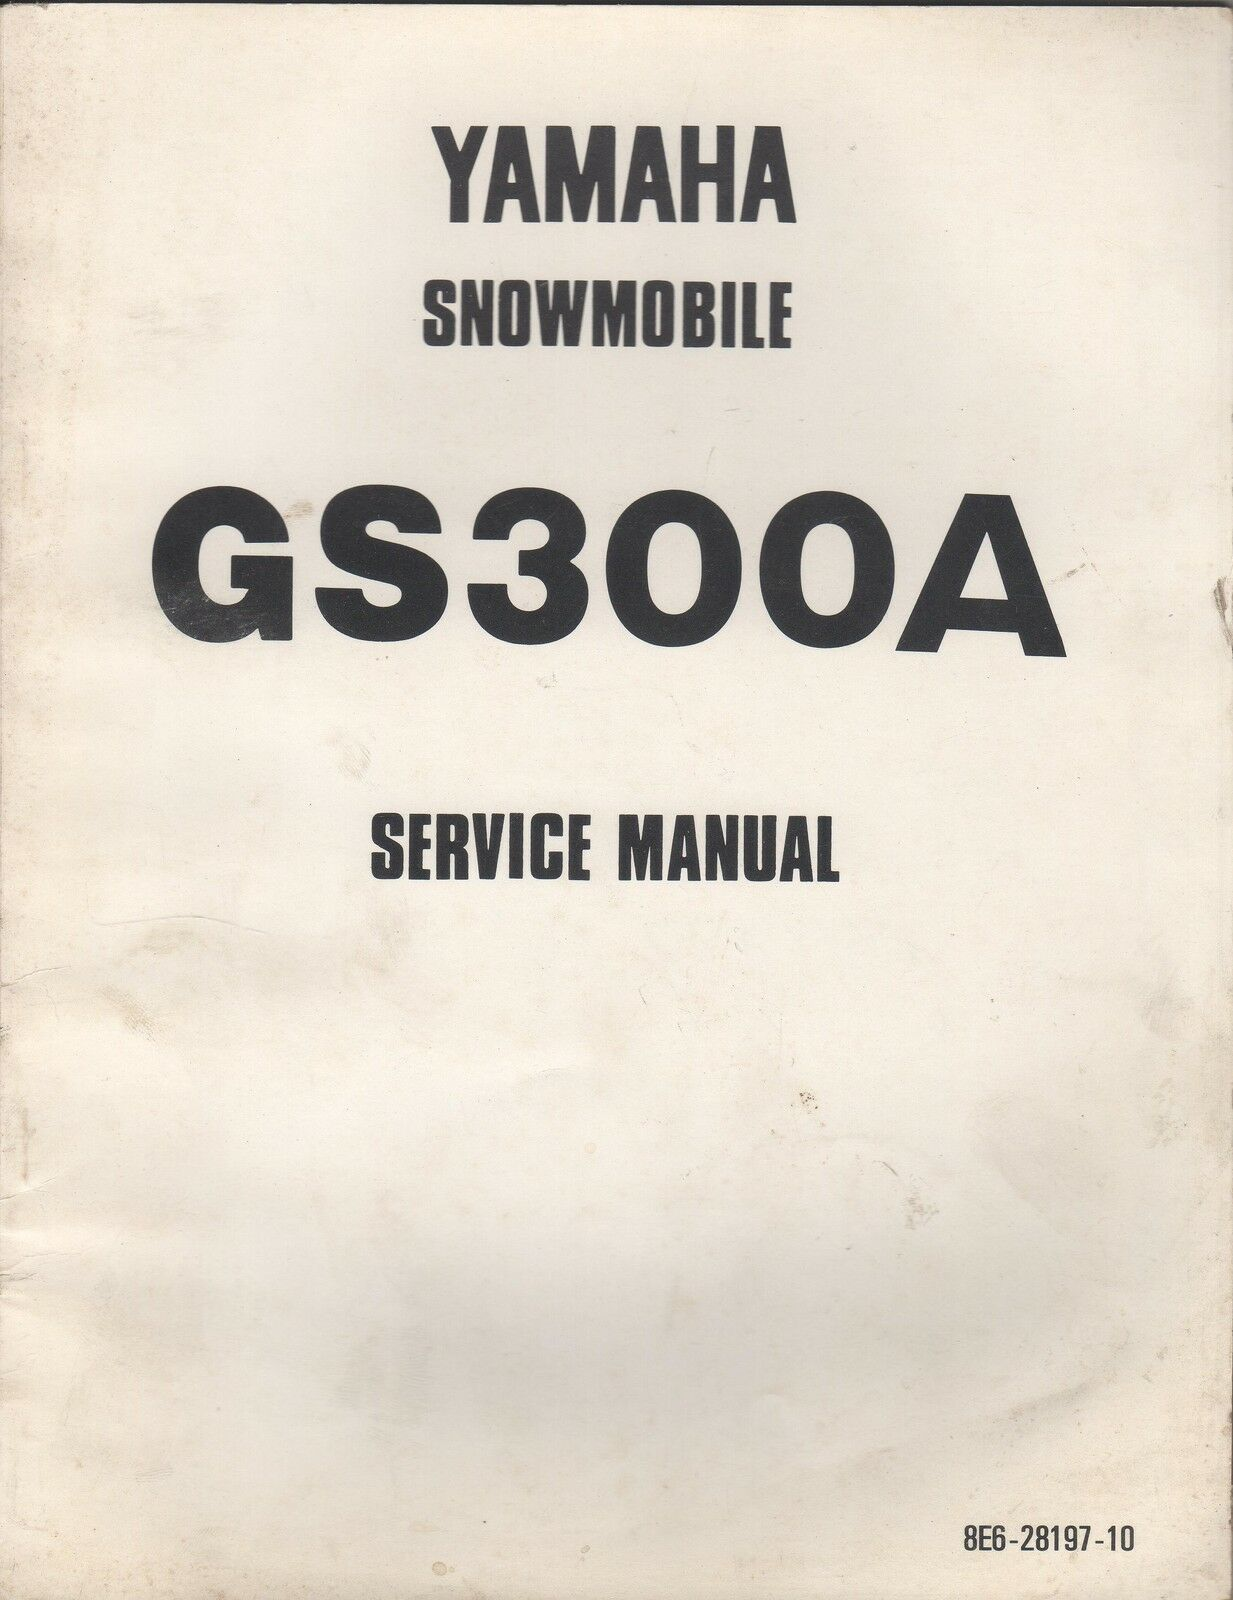 1977 YAMAHA SNOWMOBILE GS300A SERVICE MANUAL